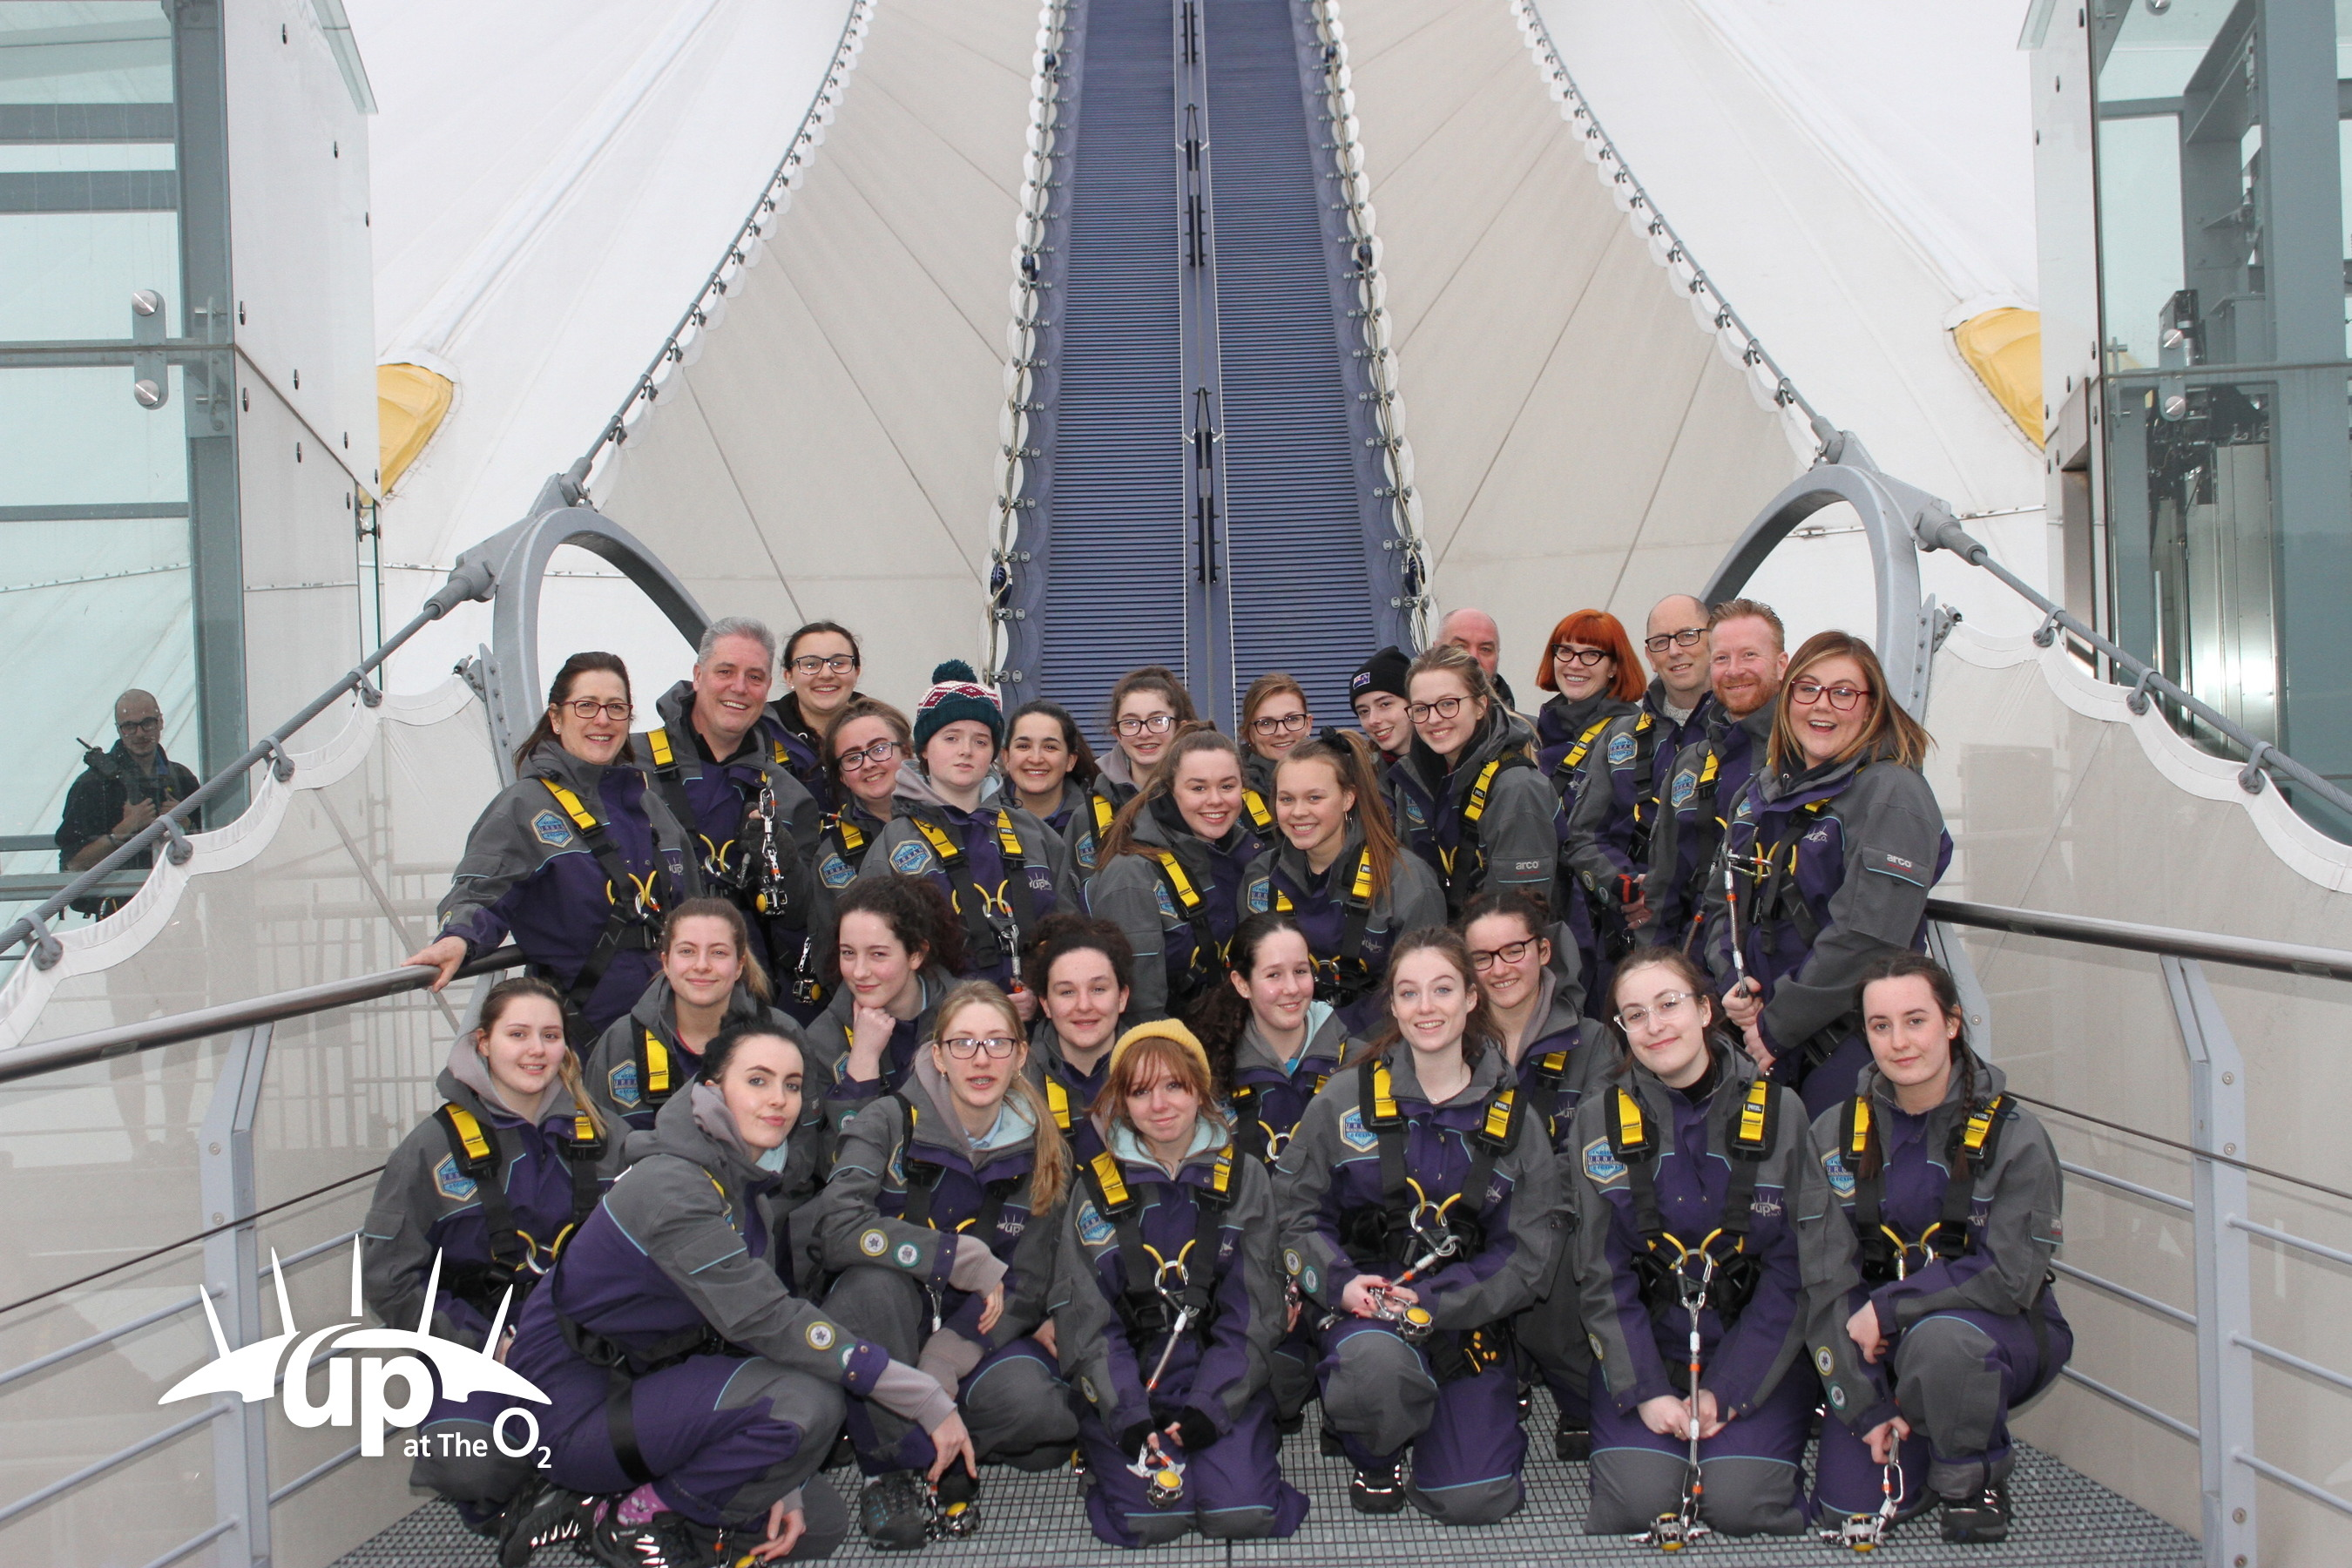 Guides climbed to the top of the O2!